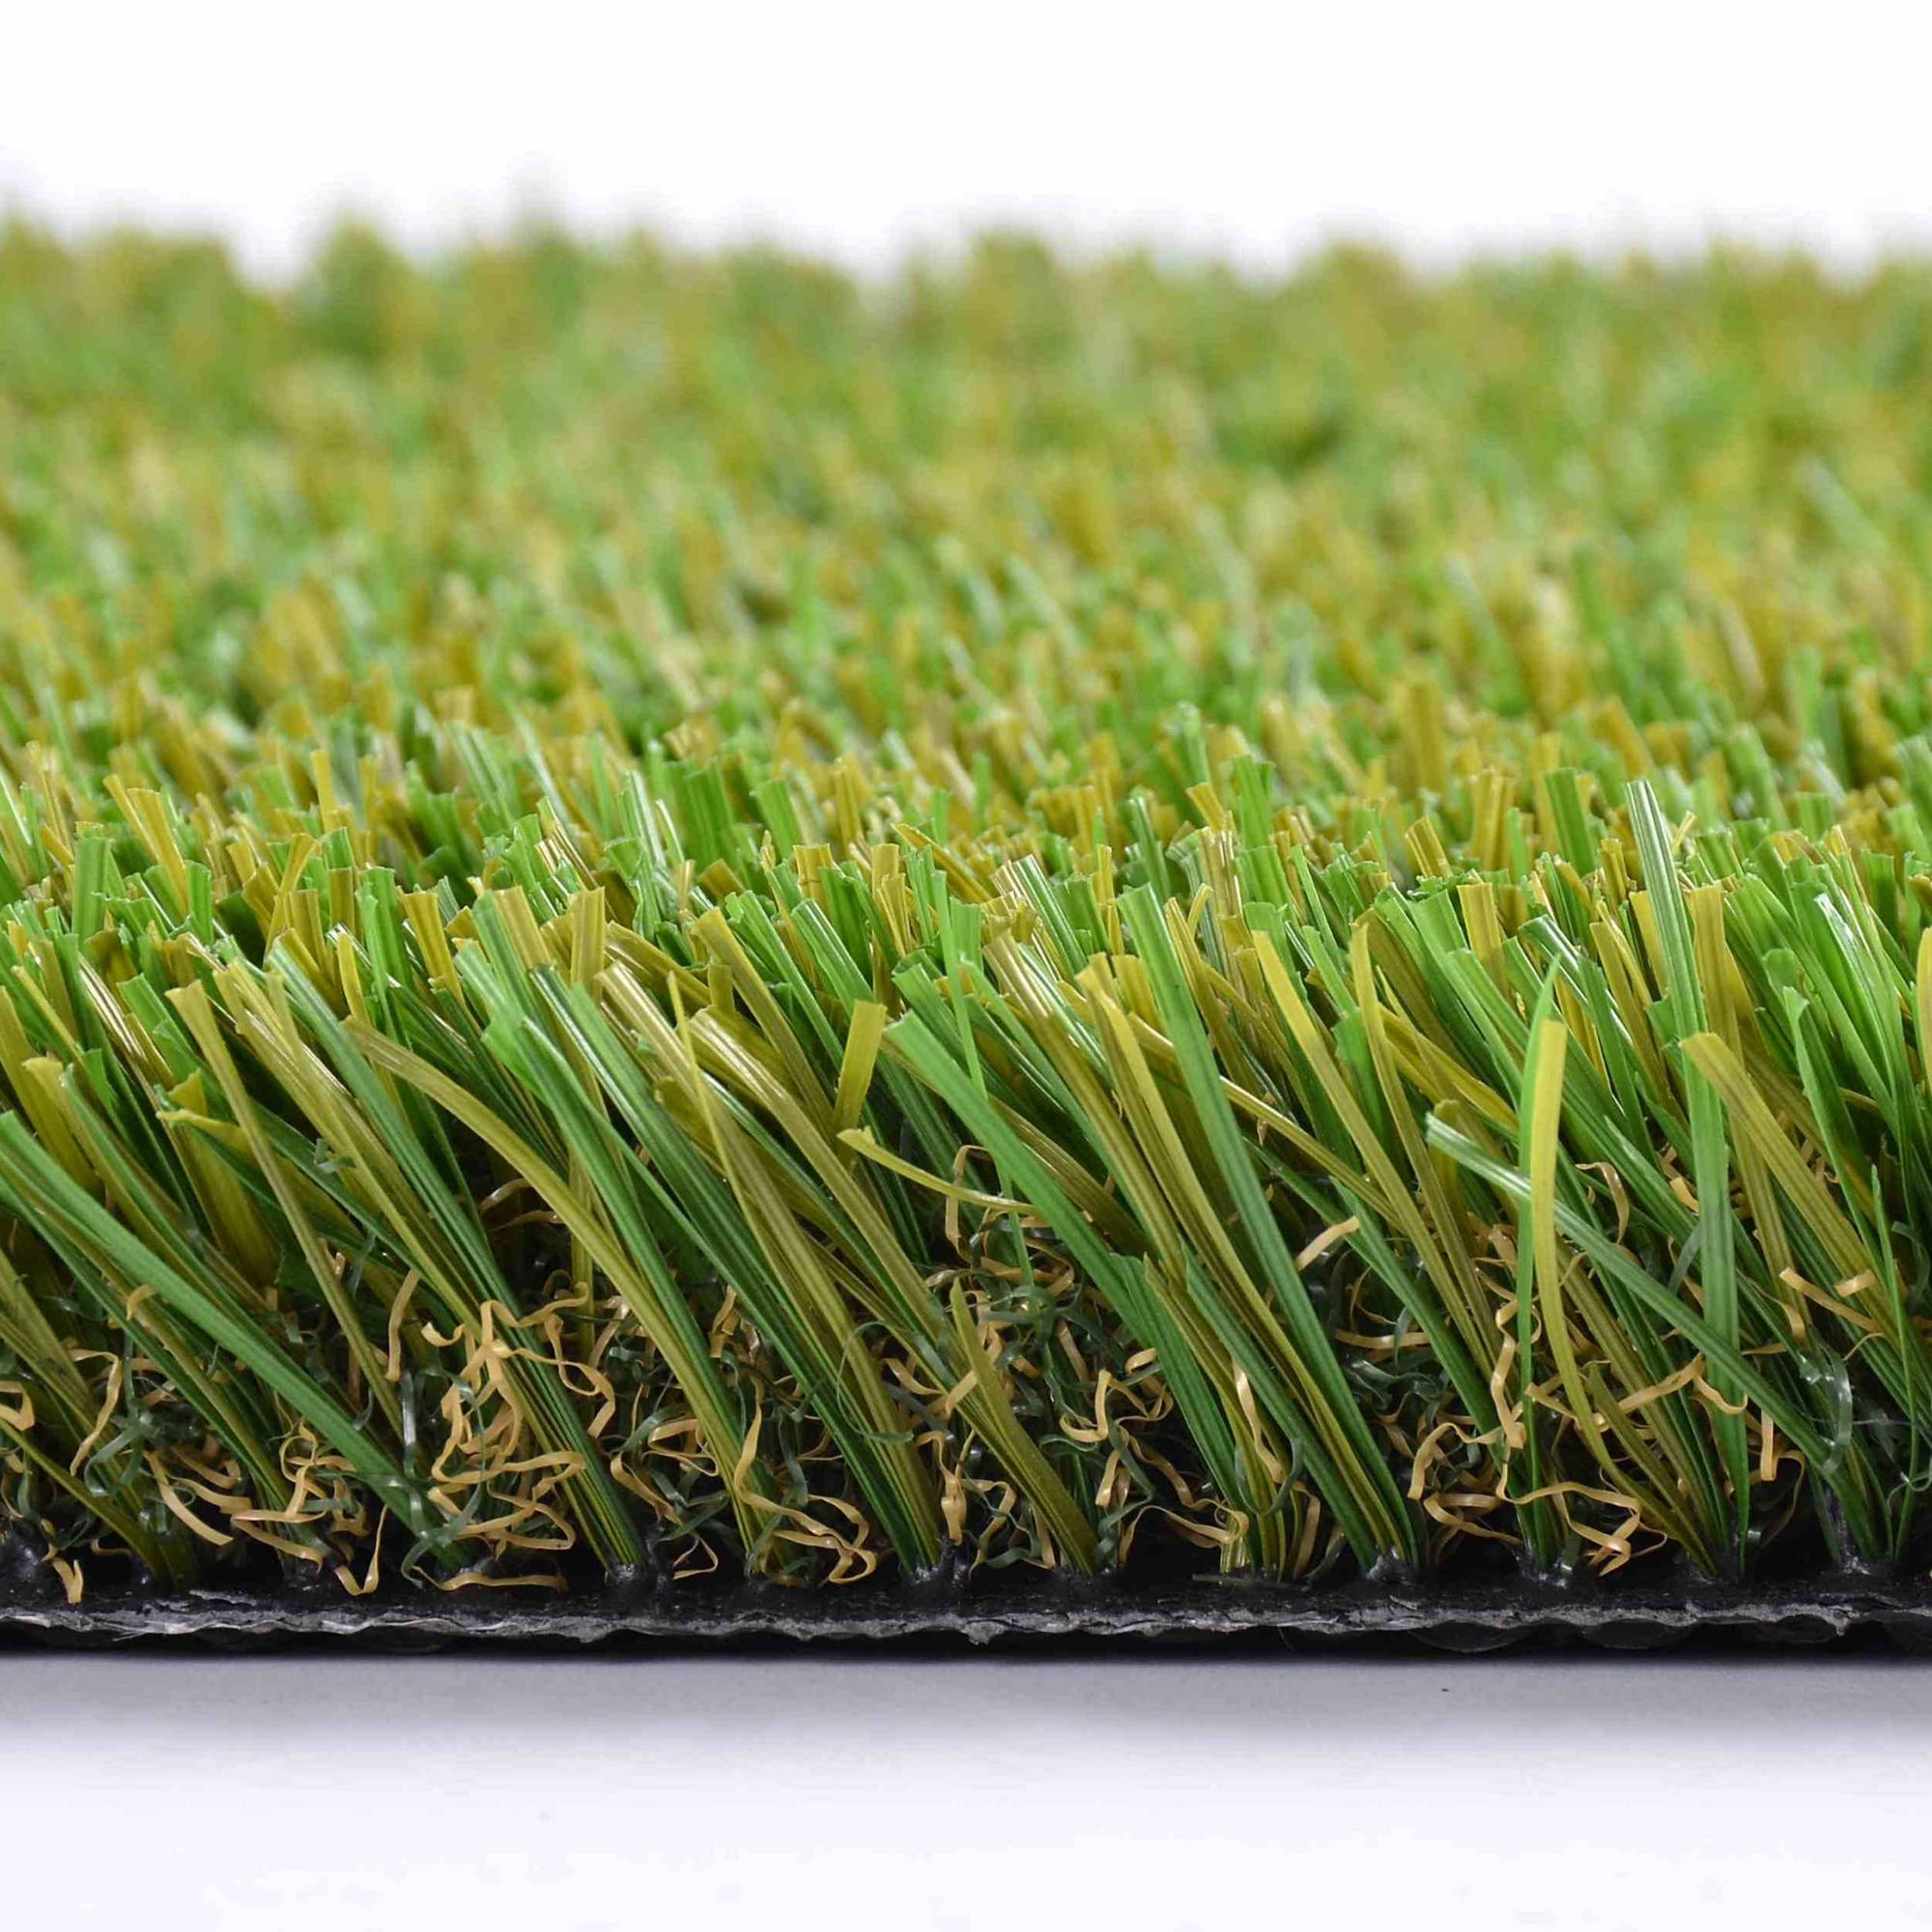 Artificial Grass for Garden Flooring